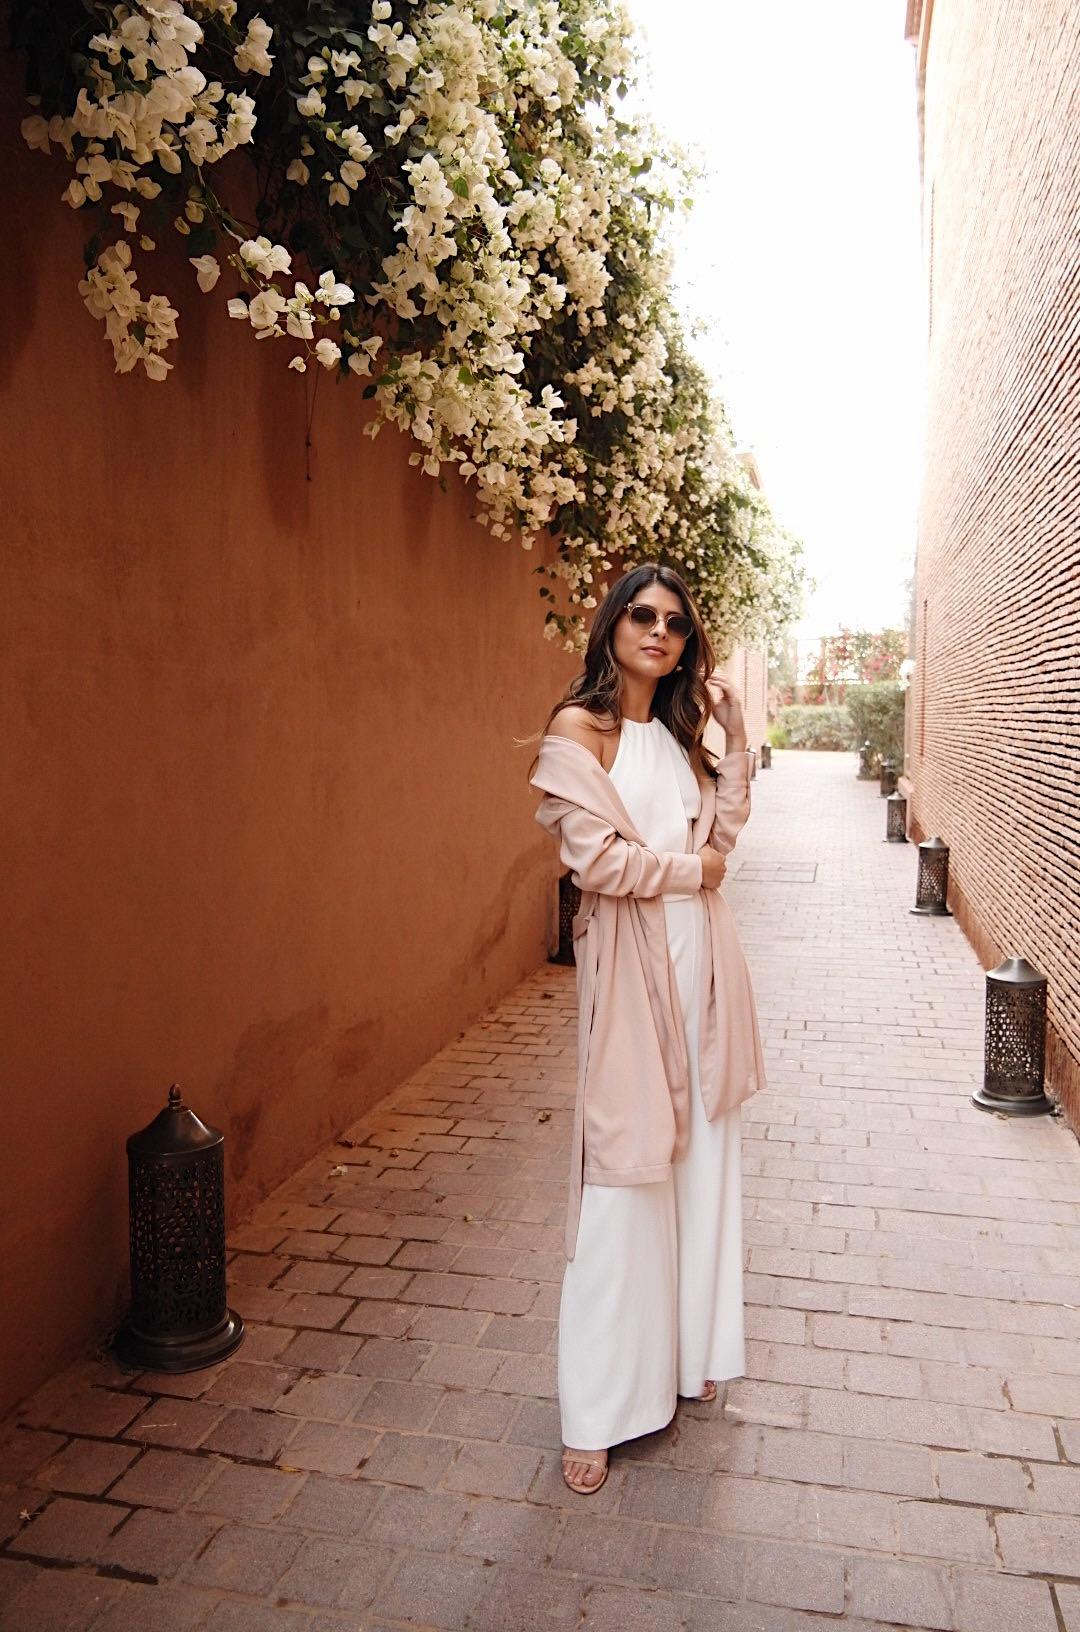 Pam Hetlinger wearing a white jumpsuit in Marrakech Morocco